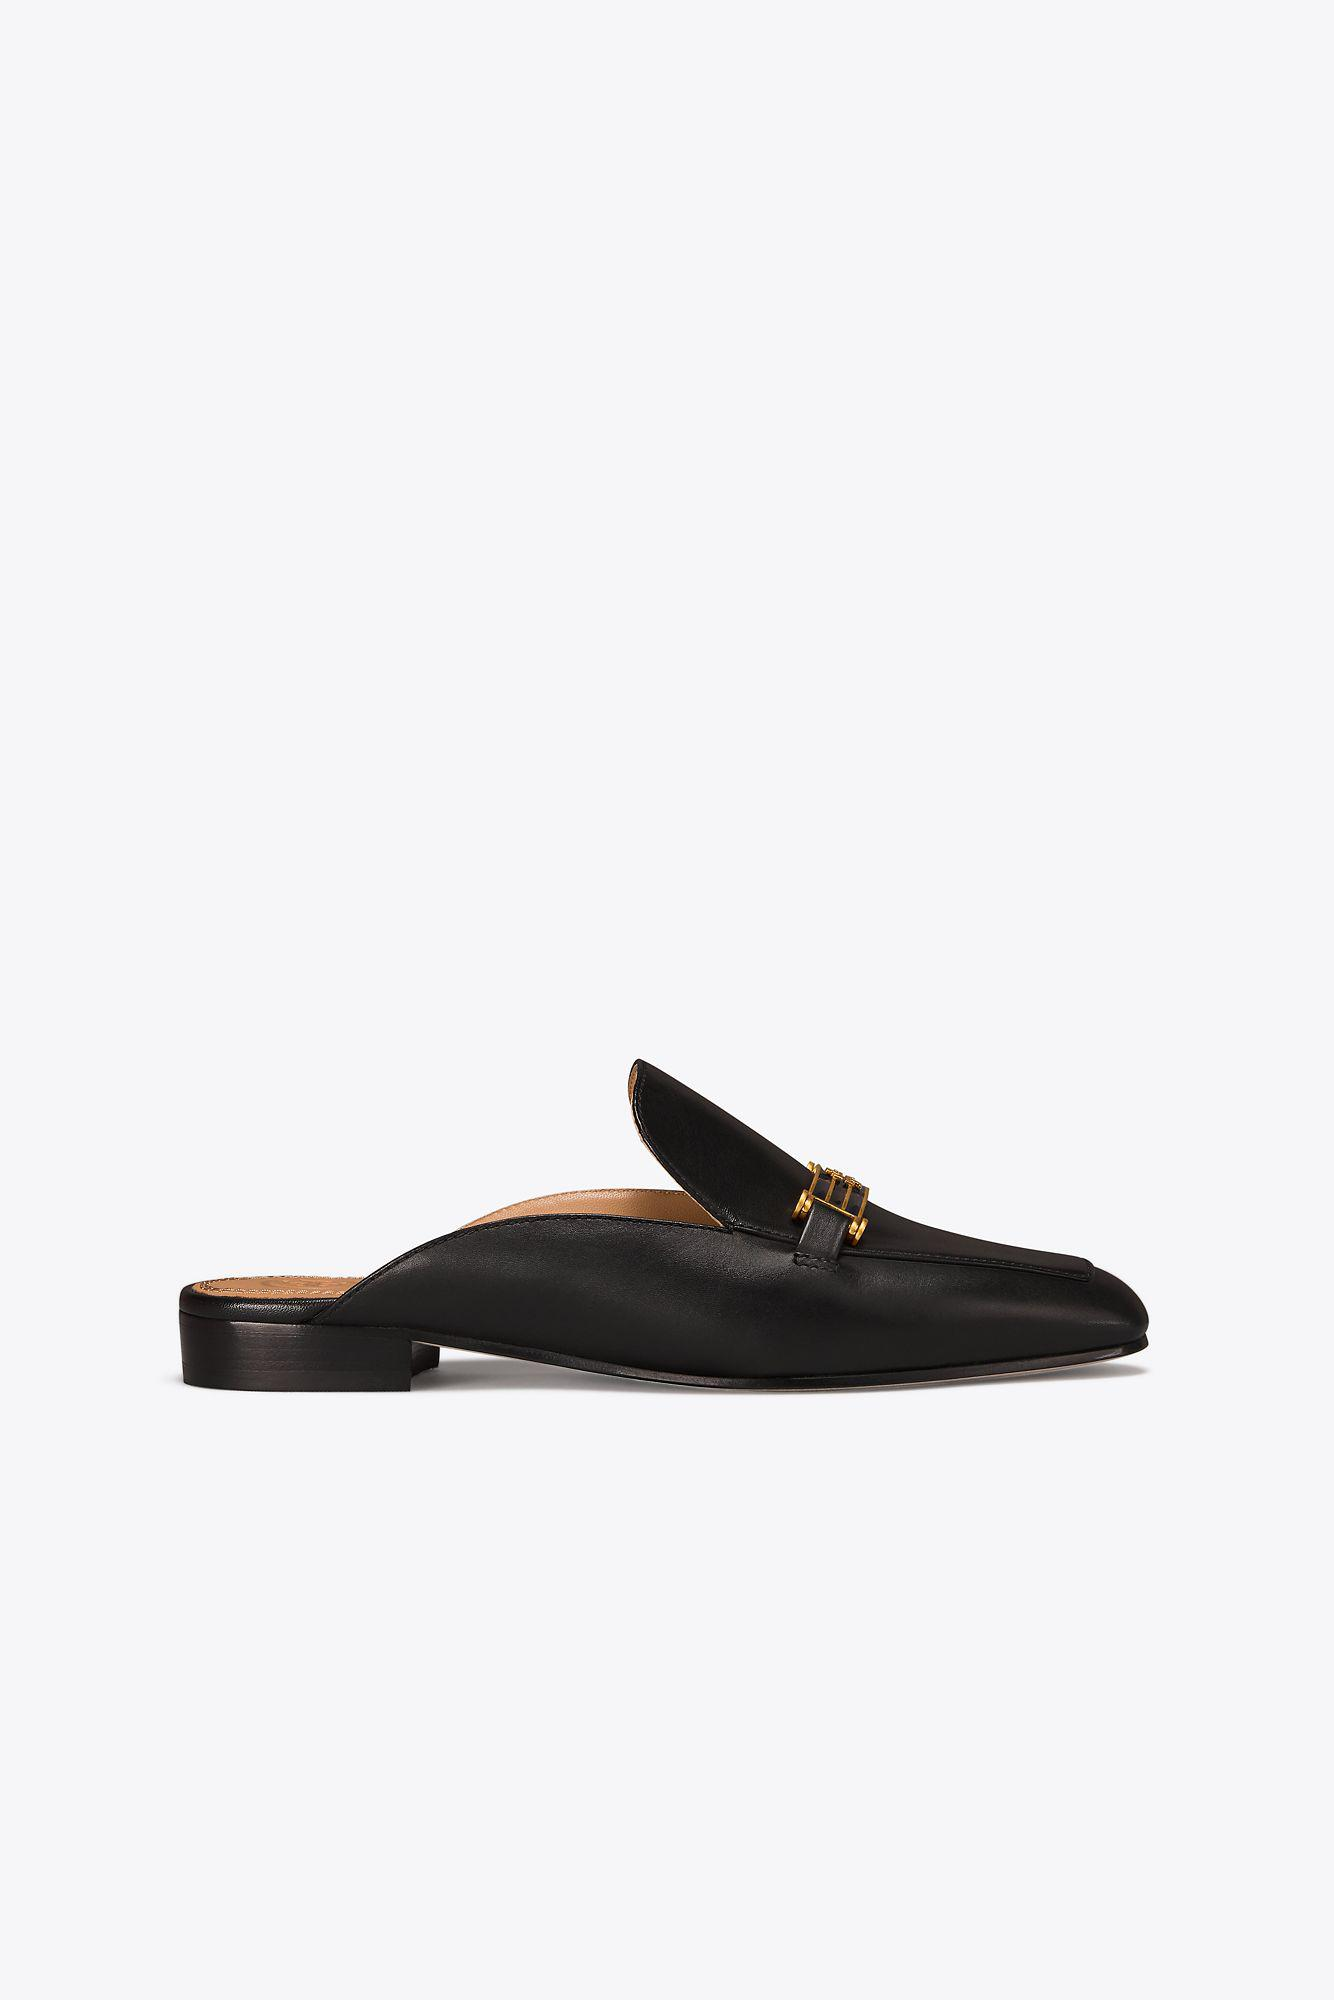 7a30bf8d9b6 Tory Burch Amelia Backless Loafer in Black - Lyst